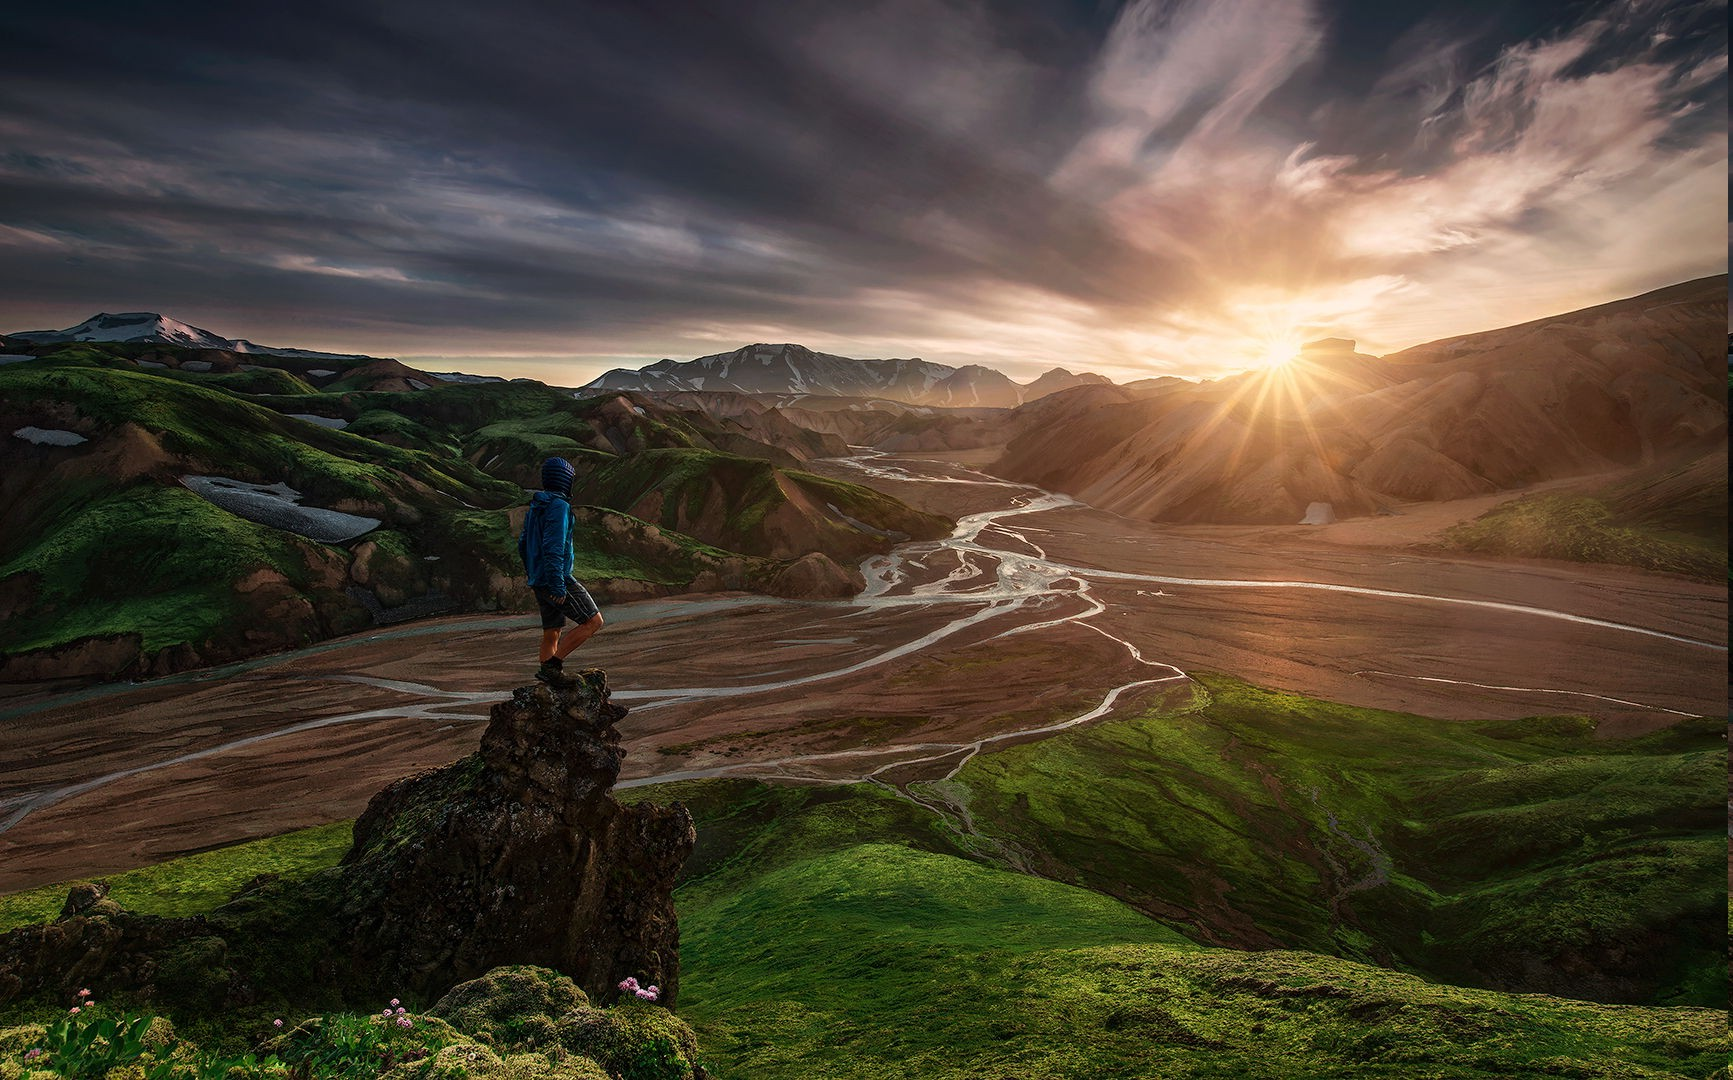 Best 3d Hd Wallpapers Download Landscape Max Rive Nature River Mountain Wallpapers Hd